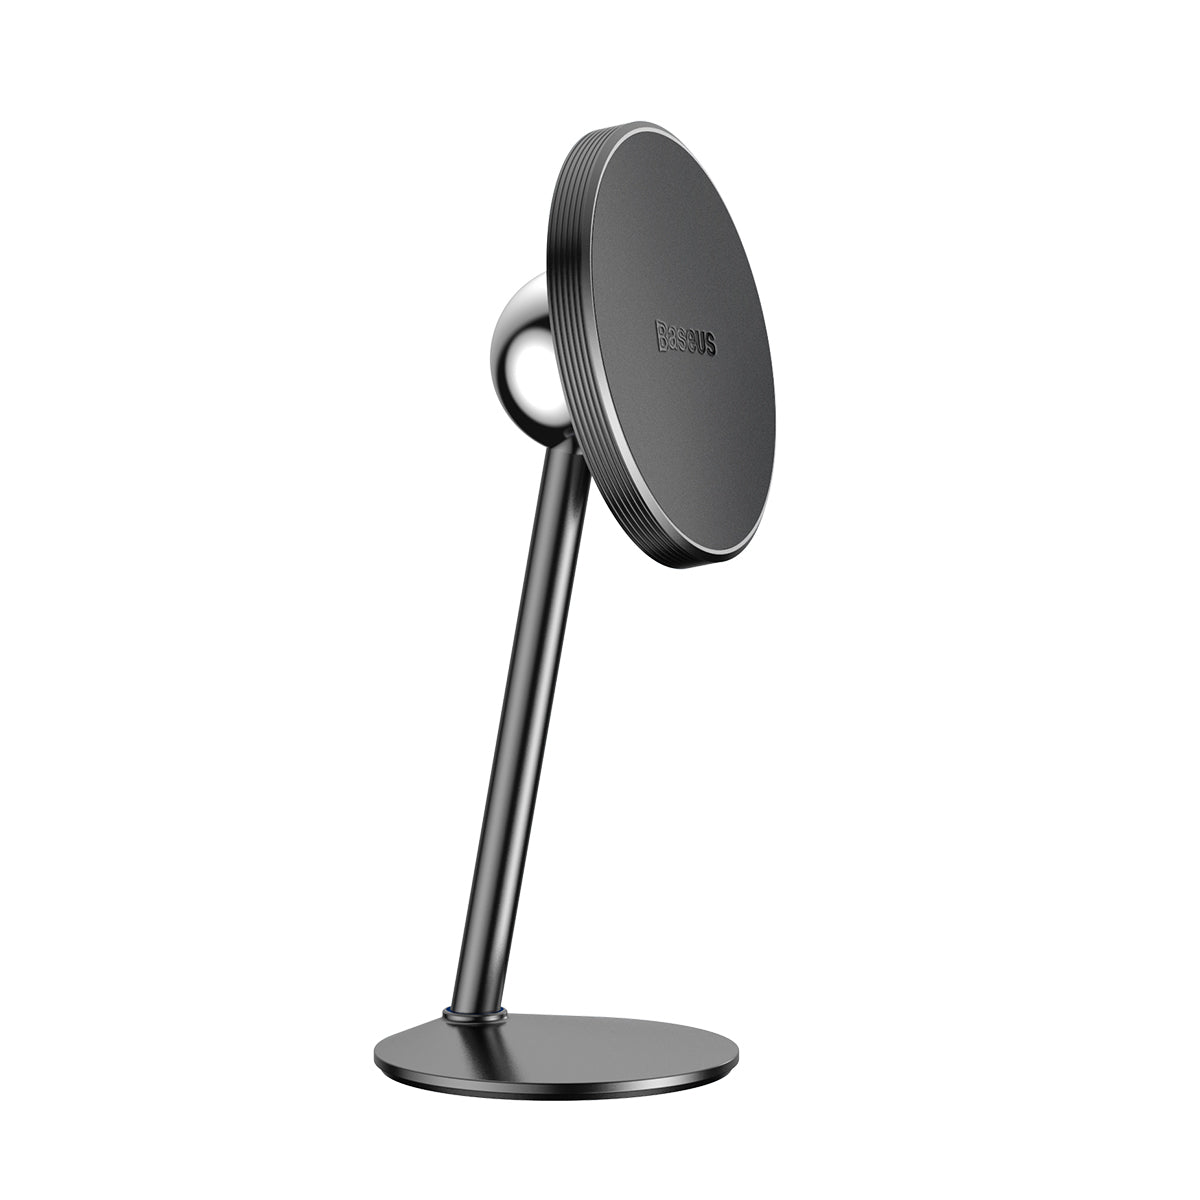 BASEUS Little Sun Magnetic Car Mount Phone Holder for Dashboard (Adhesive)